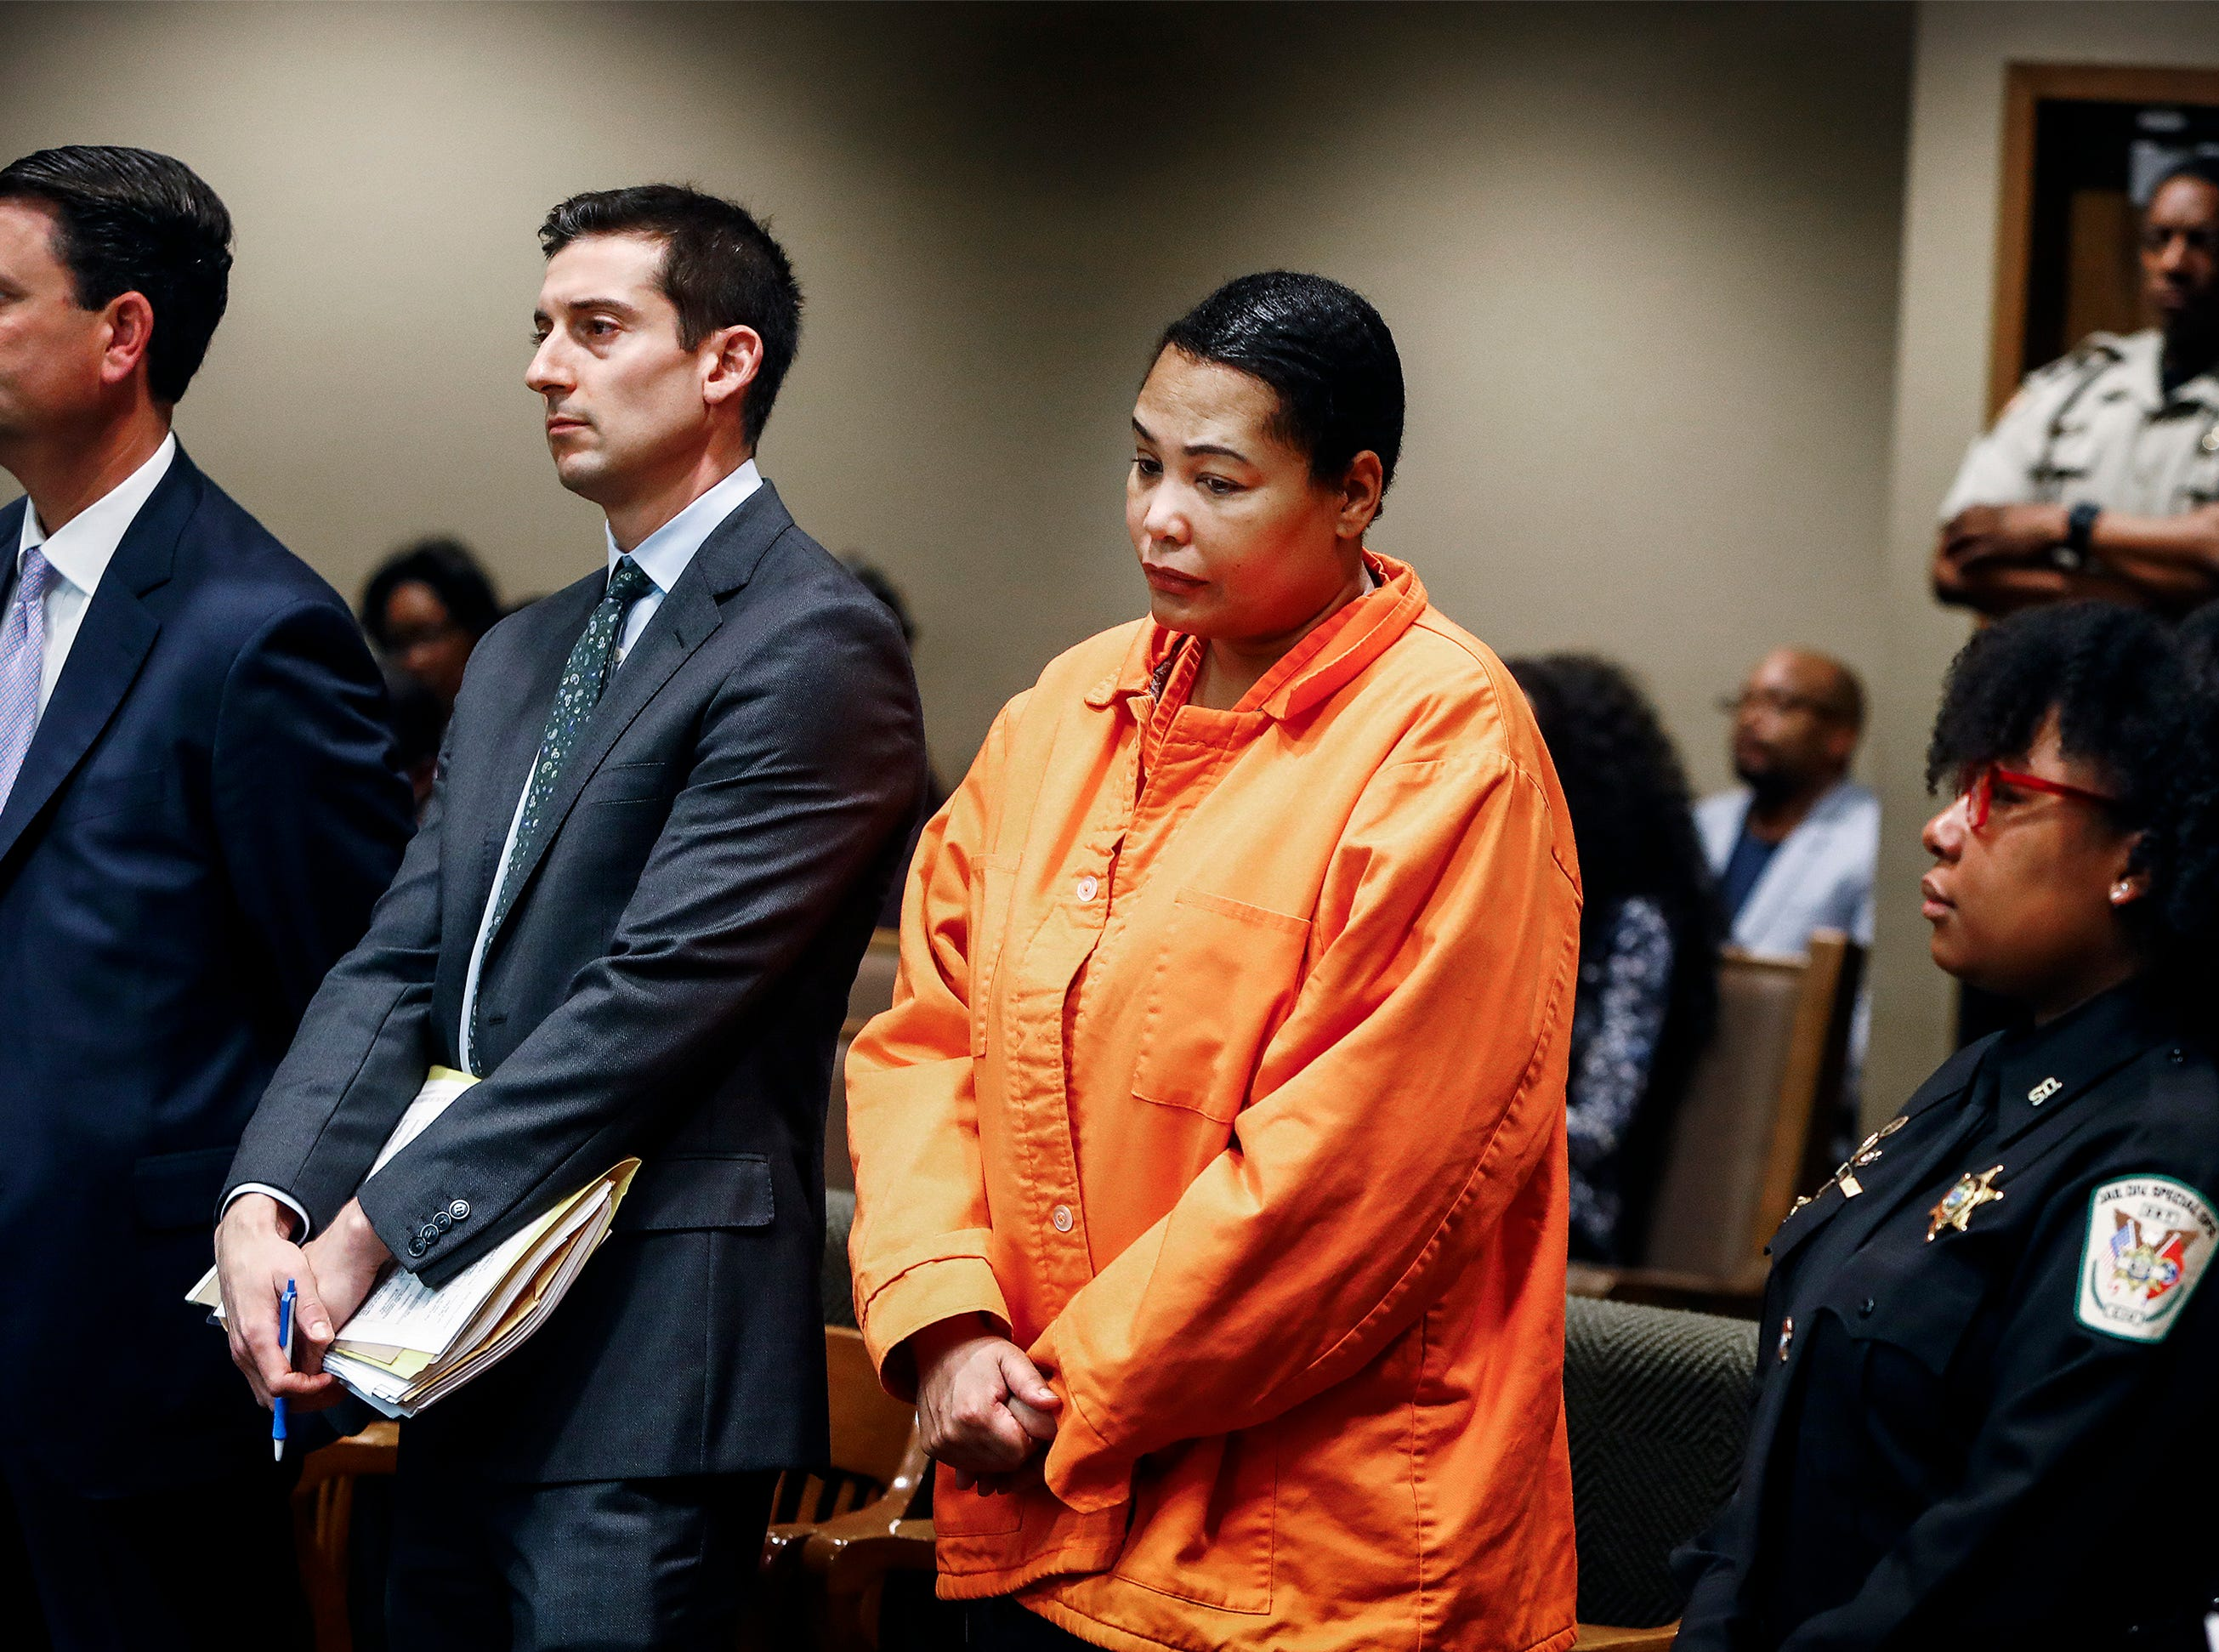 Sherra Wright (right) along with her attorneys Steve Farese Jr. (left) and Blake Ballin (middle) makes a appearance in Judge Lee Coffee's courtroom Monday morning. The prosecutors announced they will not seek the death penalty against Wright and co-defendant Billy Turner, who are charged in the killing of former NBA player Lorenzen Wright.